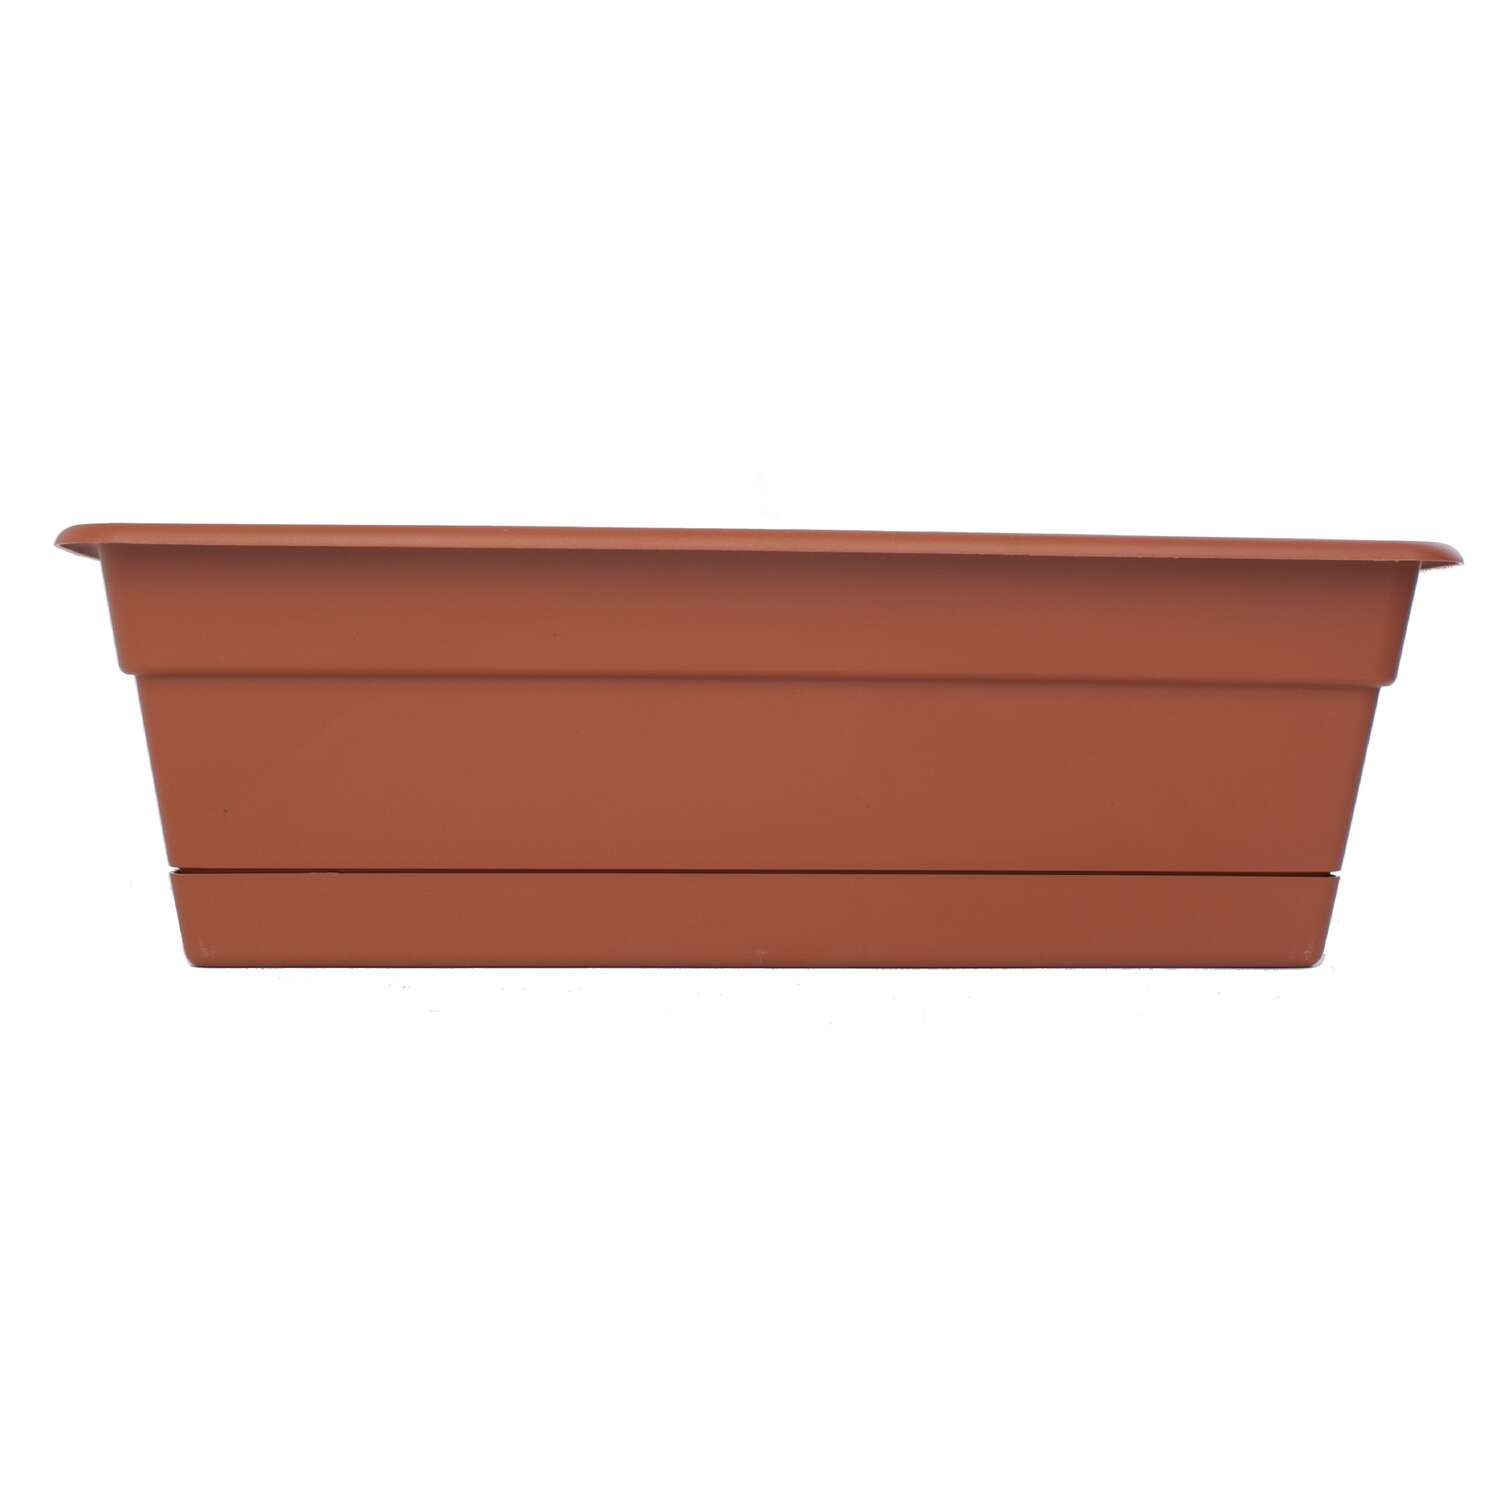 Bloem Living  5.75 in. H x 24 in. W x 7.5 in. D Plastic  Window Box  Terracotta